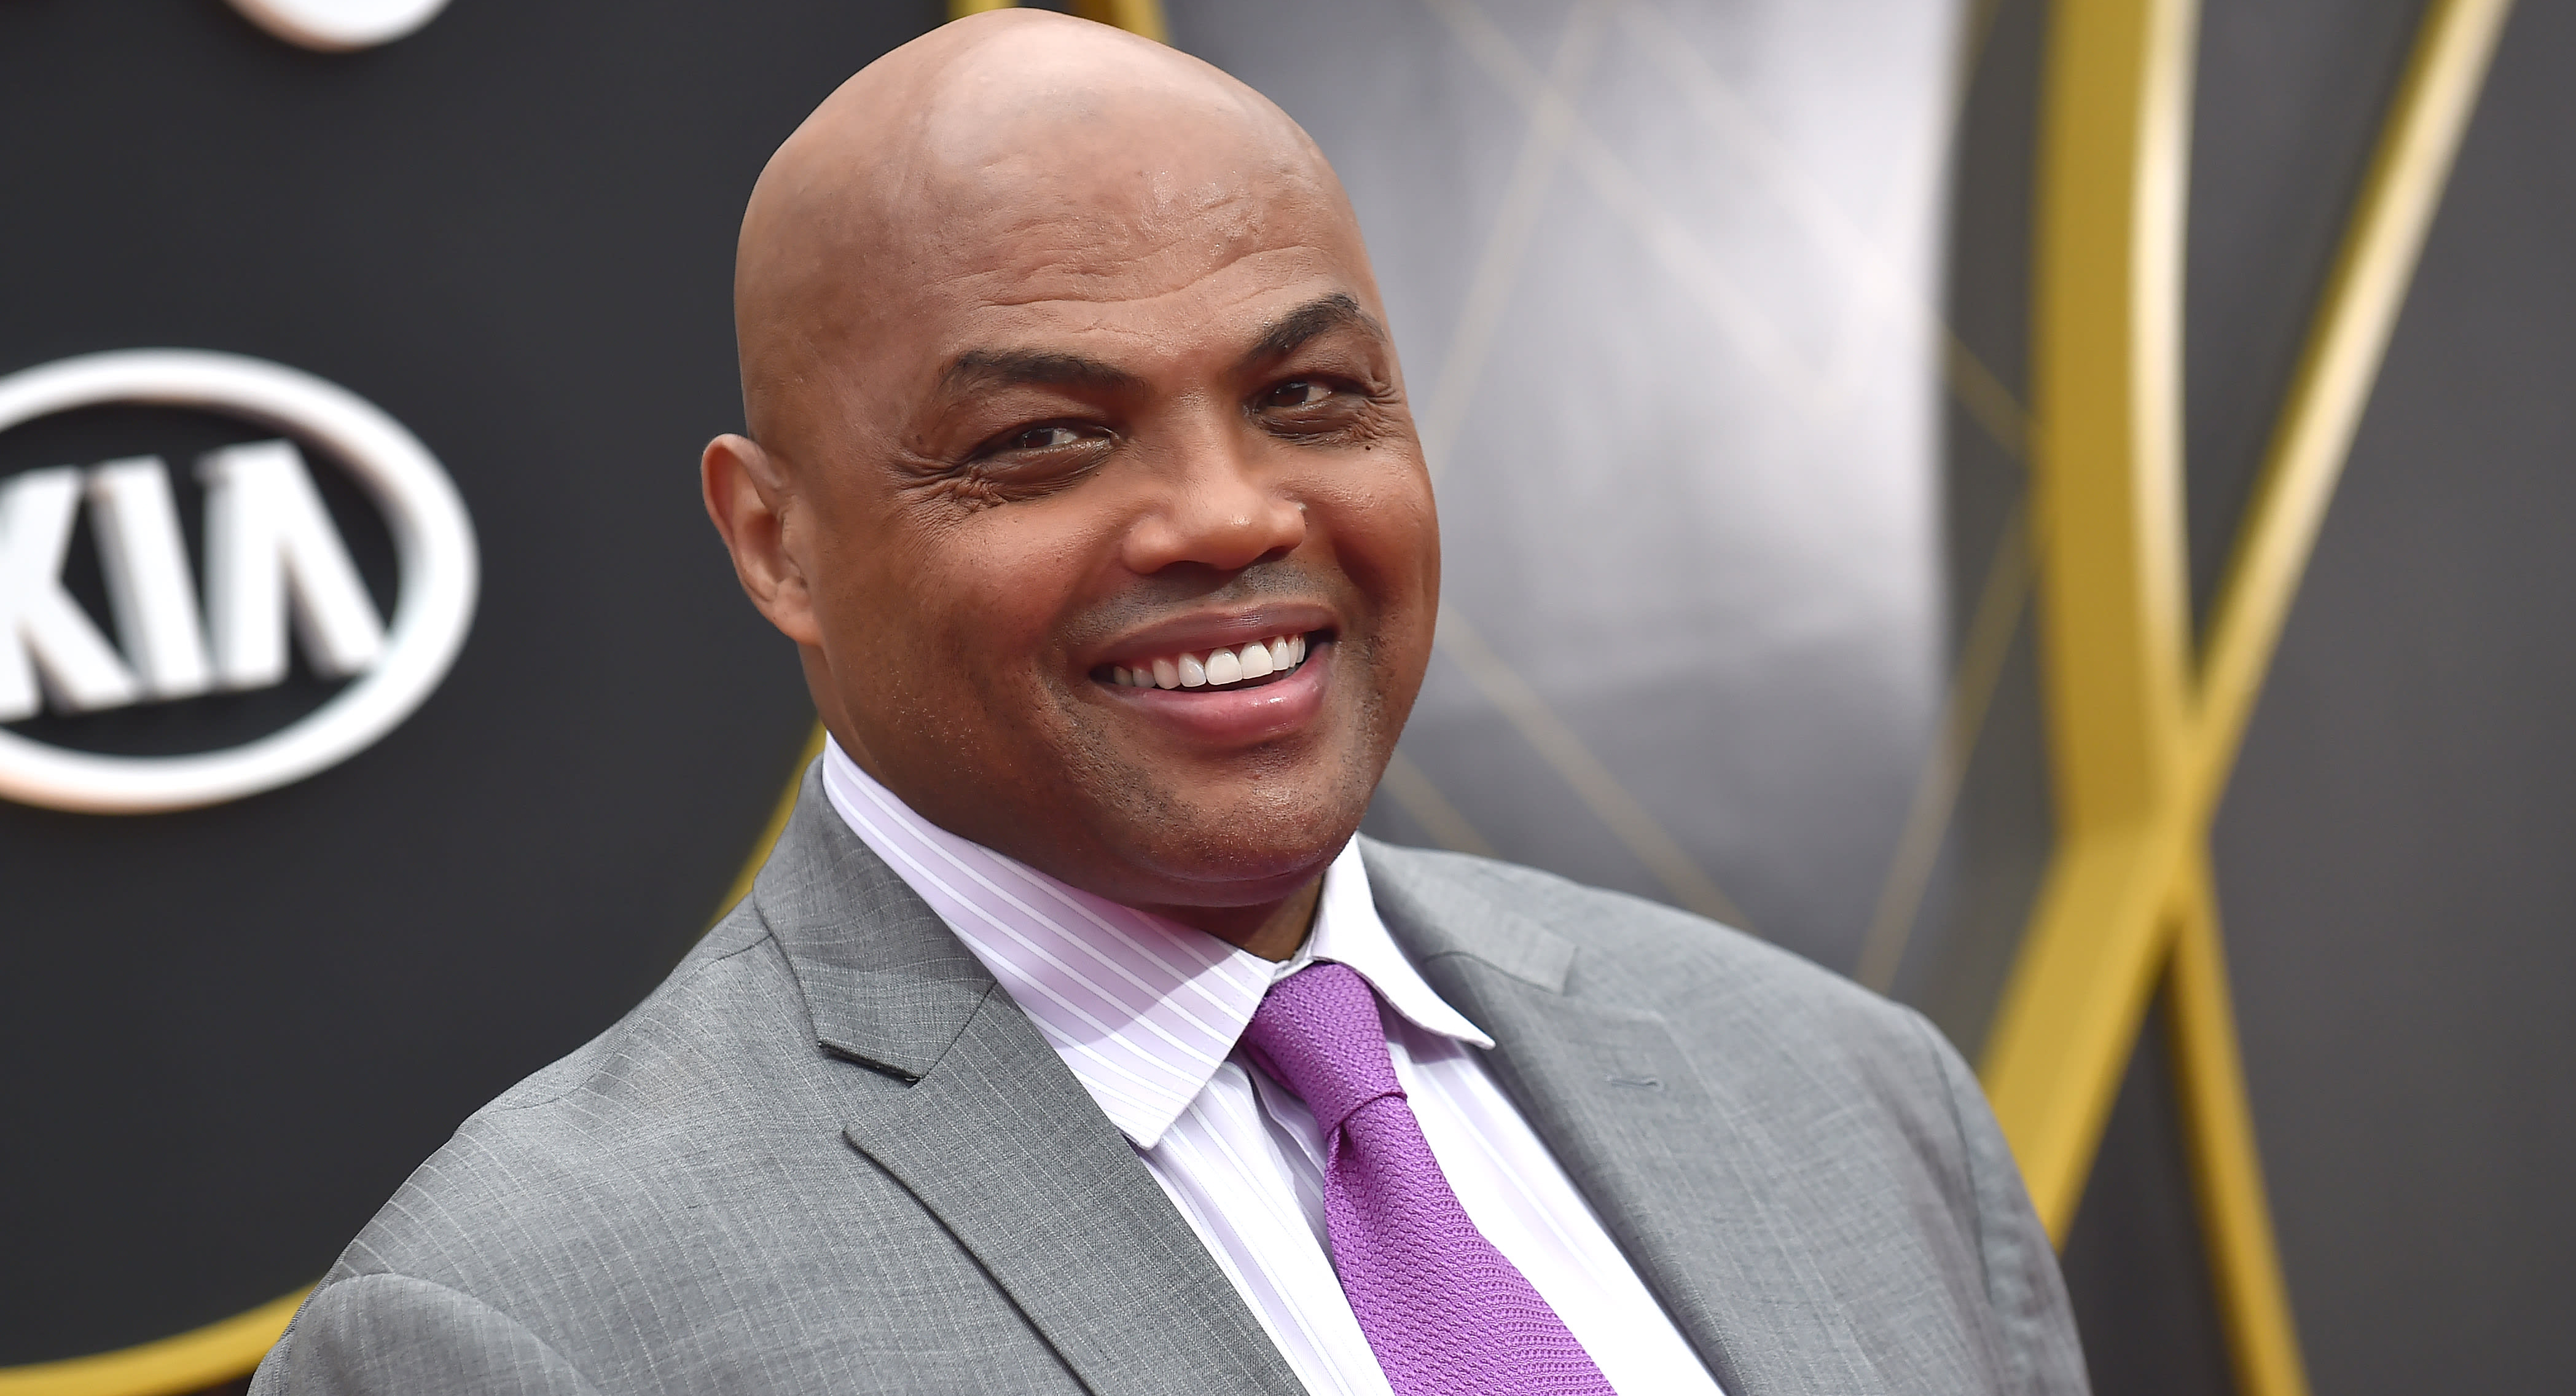 Charles Barkley to sell memorabilia to build affordable housing